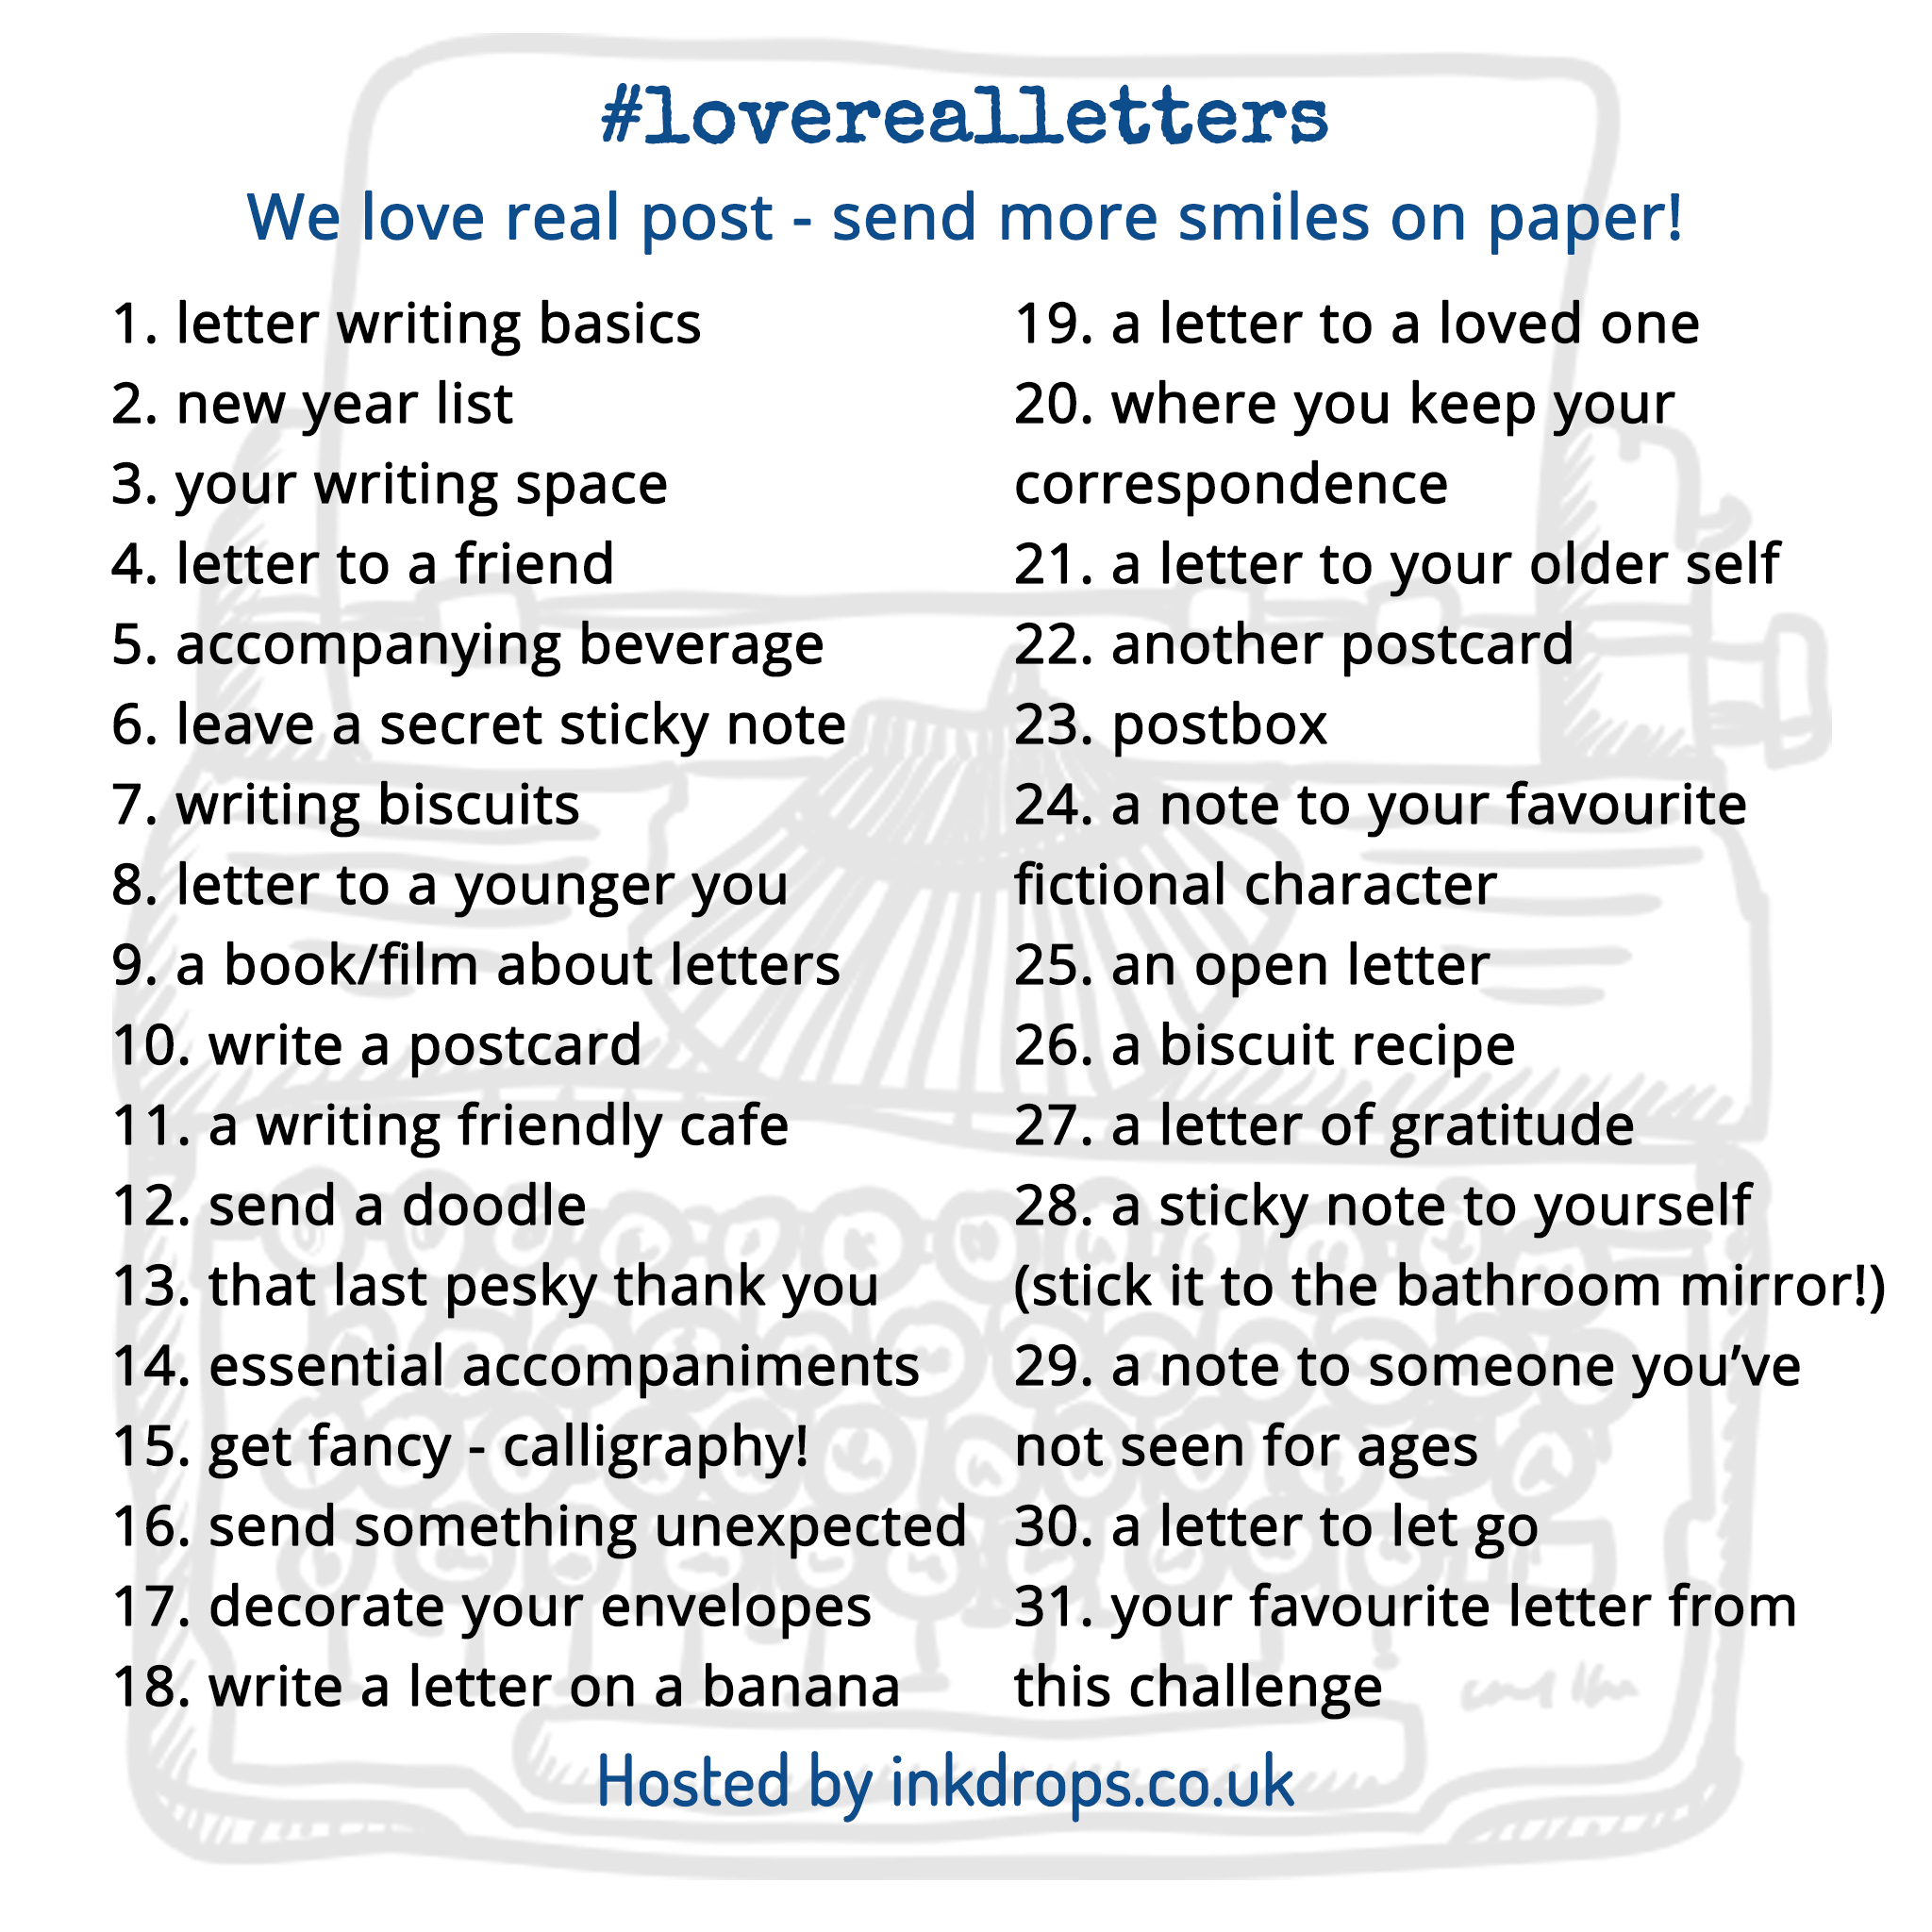 love real letters campaign from Ink Drops - January's daily prompts | Ink Drops stationery subscription box UK | inkdrops.co.uk